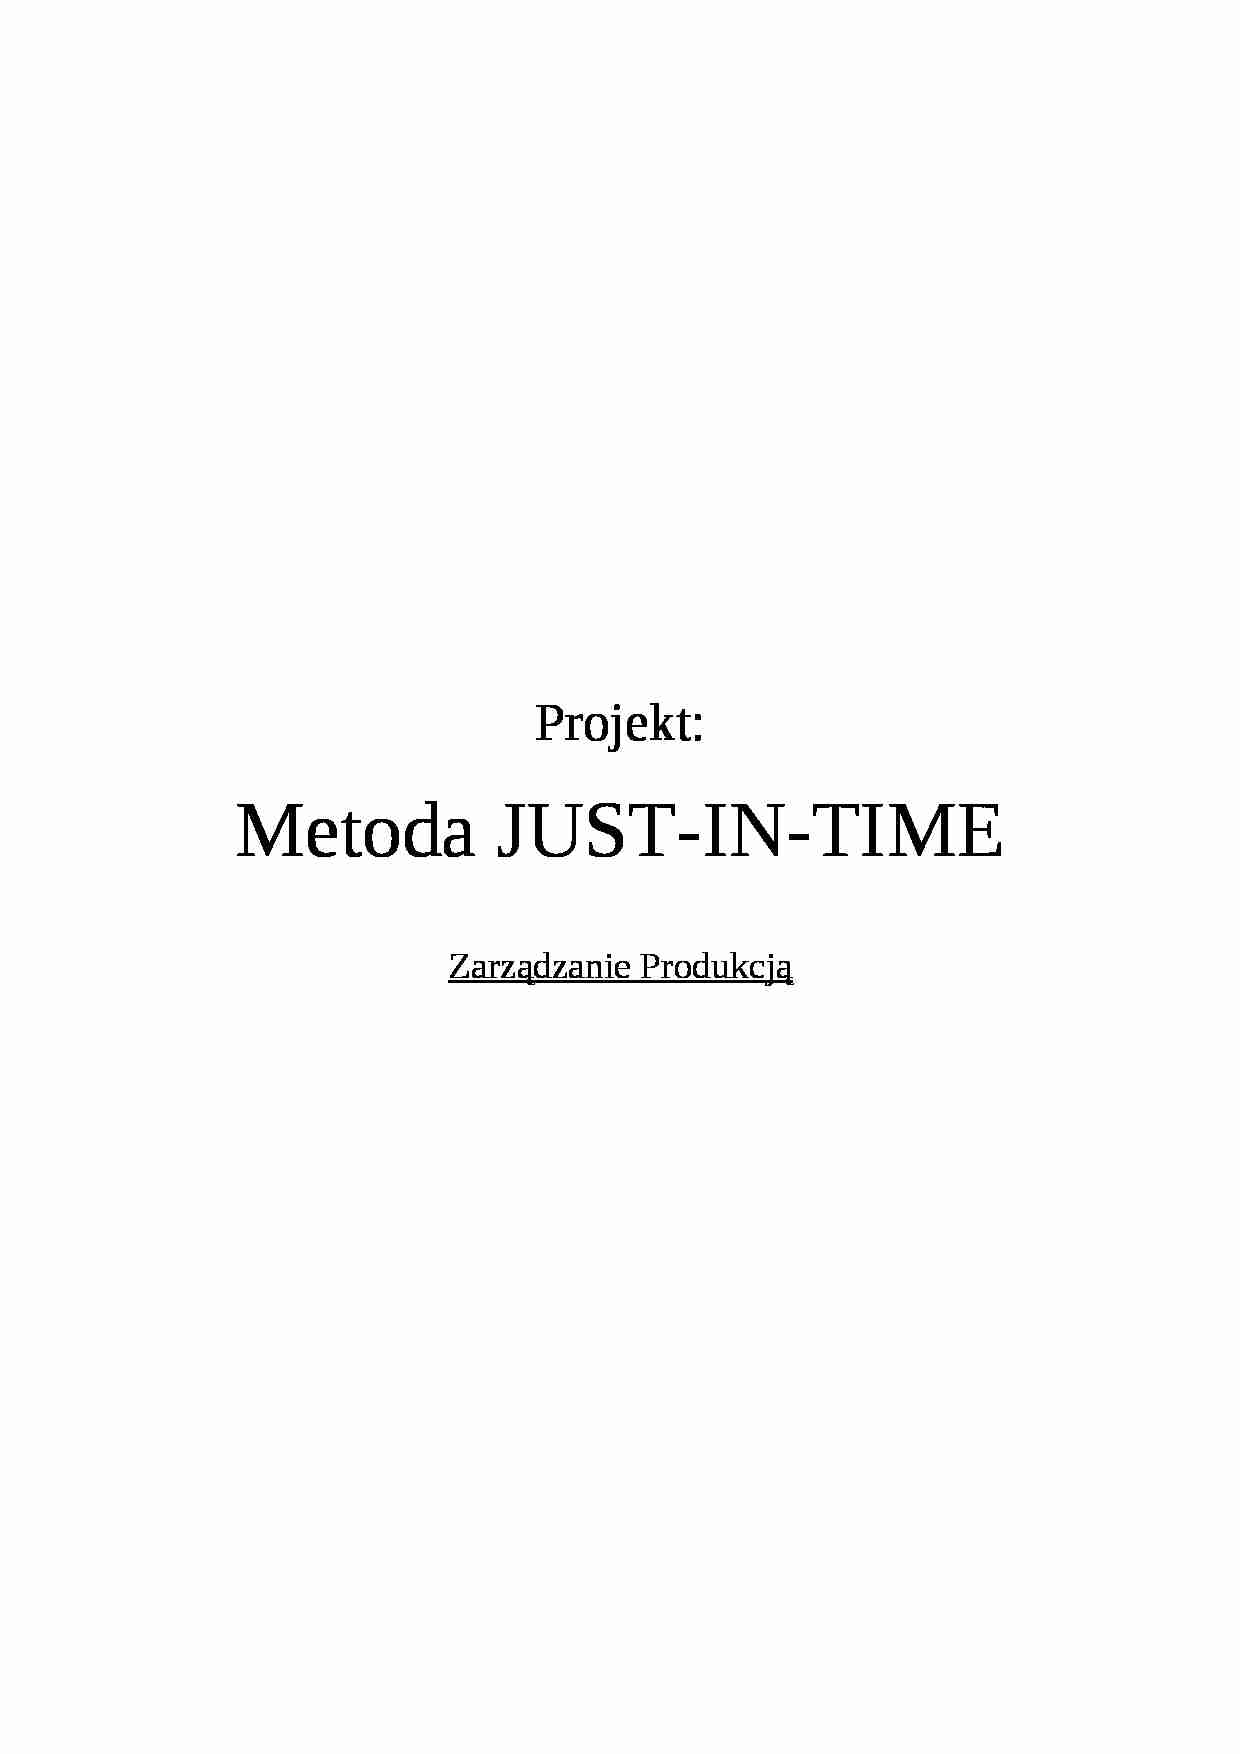 Metoda Just-In-Time - strona 1